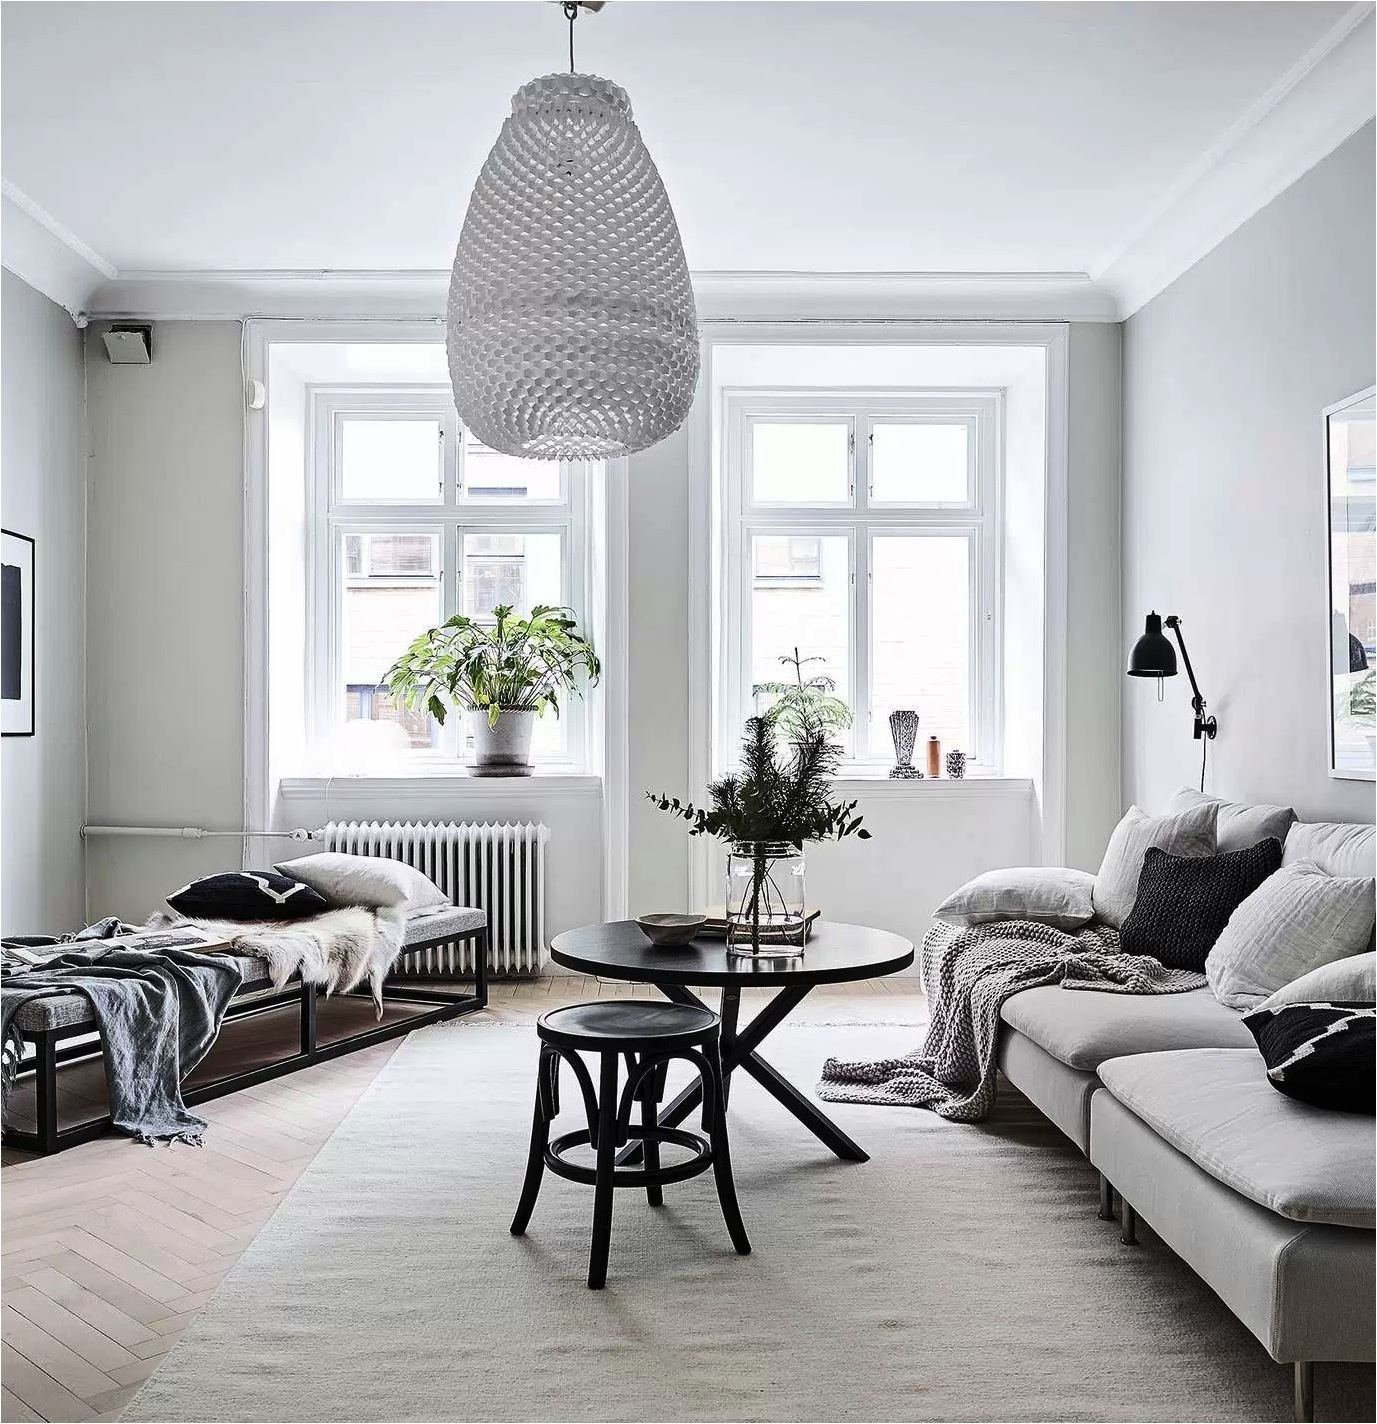 8 clever small living room ideas (with Scandi style) - DIY ... on Small Space Small Living Room Ideas  id=62546